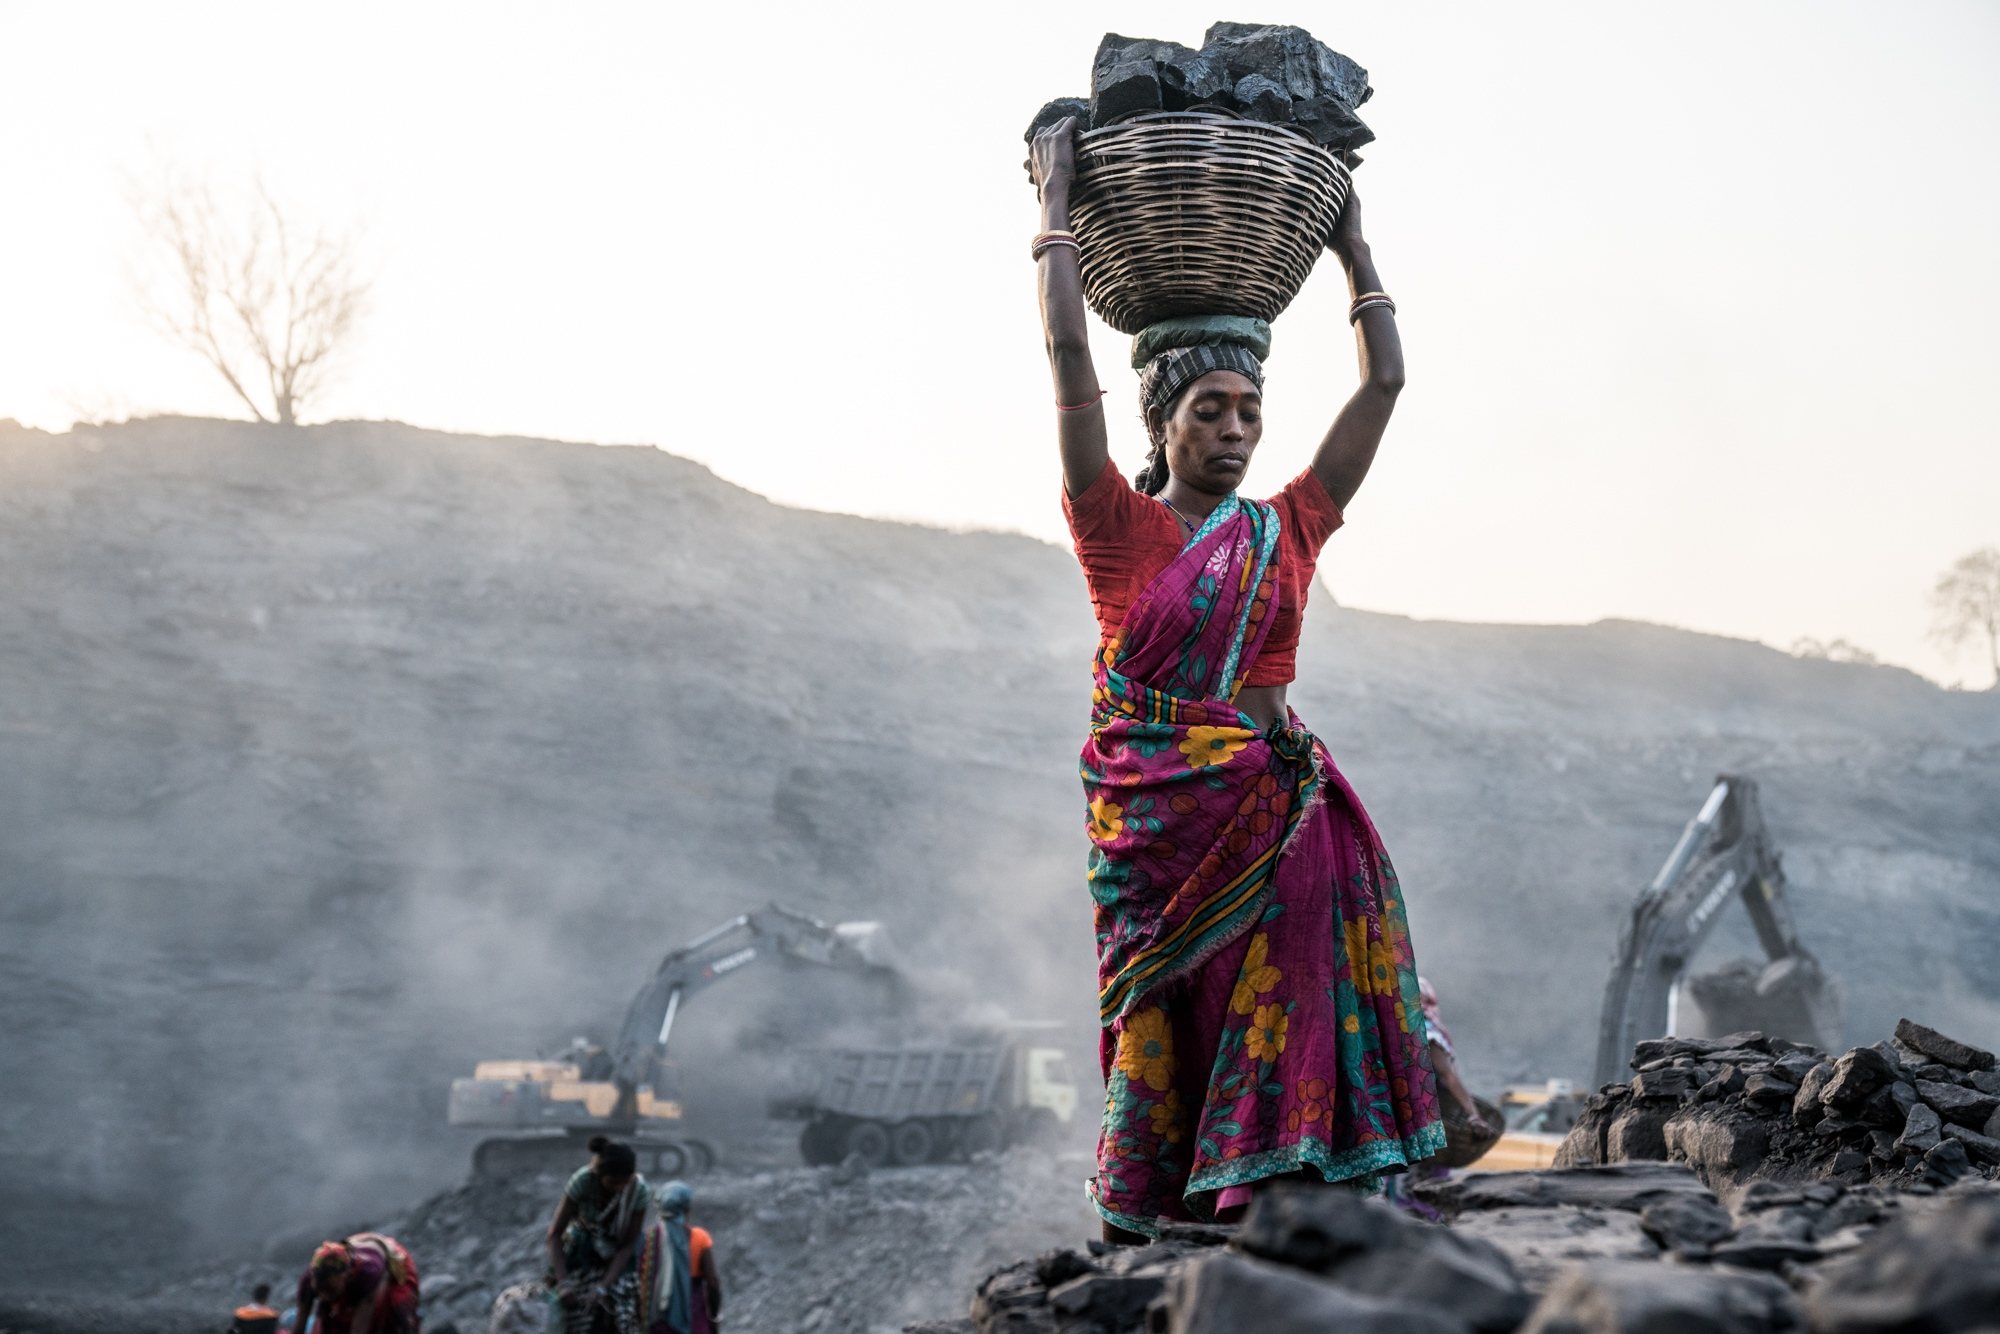 Miner carefully carries a load of coal on her head out of the mine for sale or fuel for cooking.